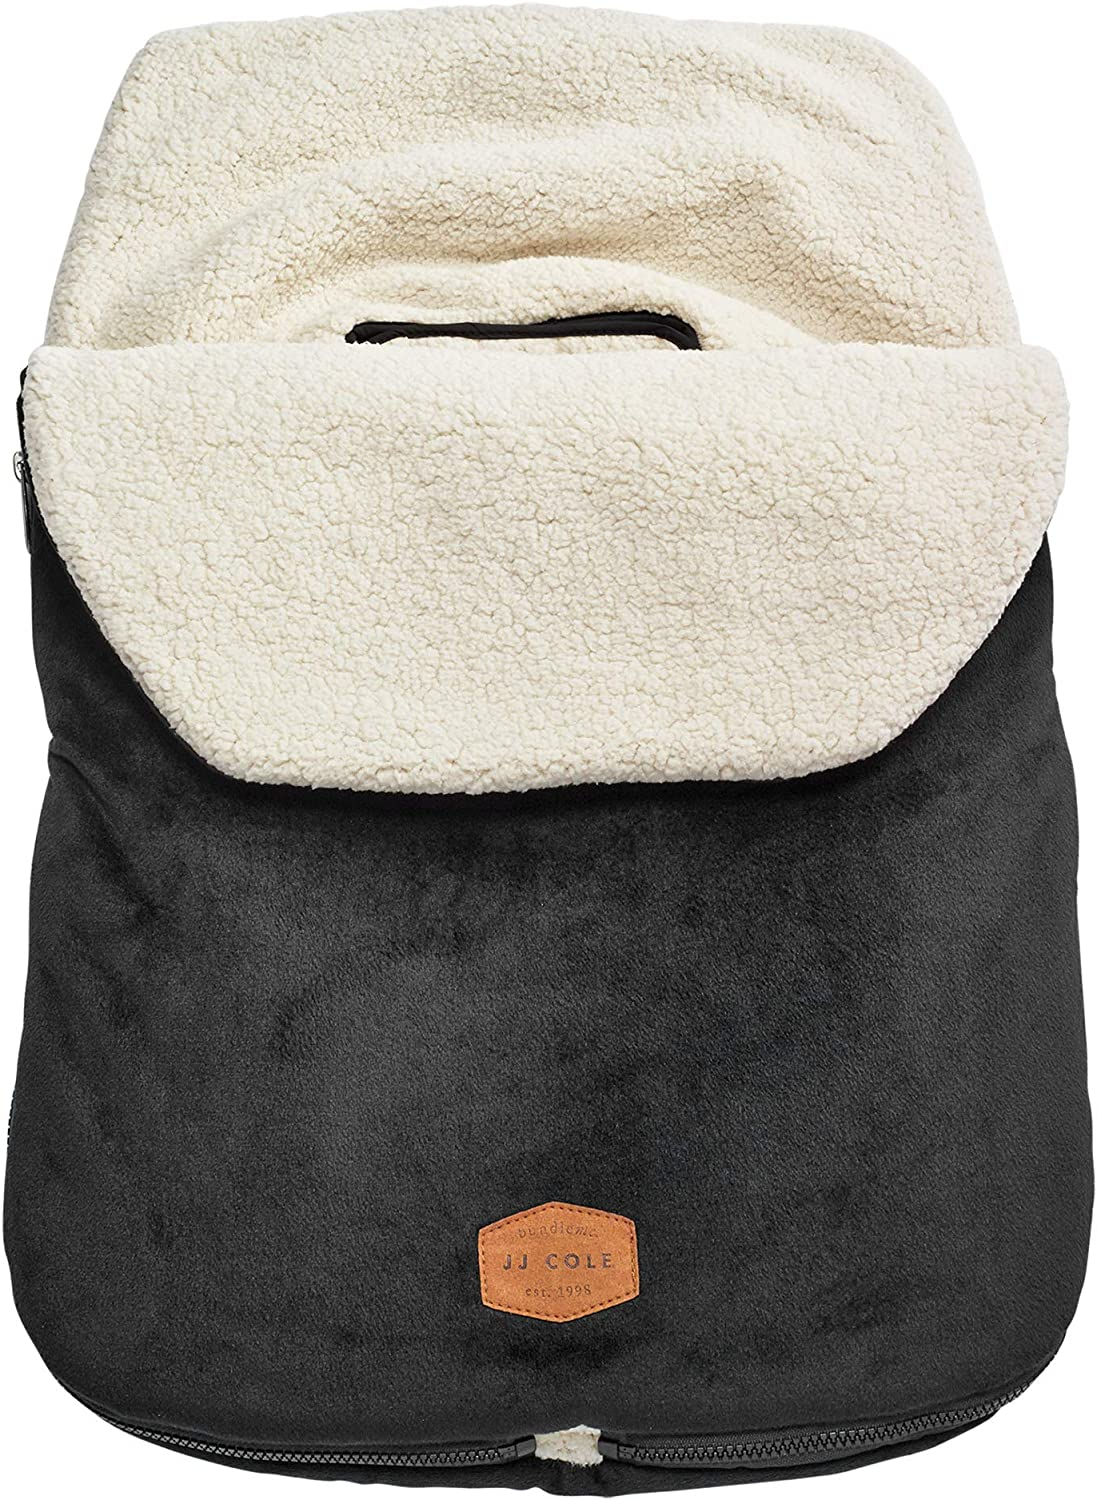 Top 10 Best Baby Bunting Bag (2020 Reviews & Buying Guide) 5